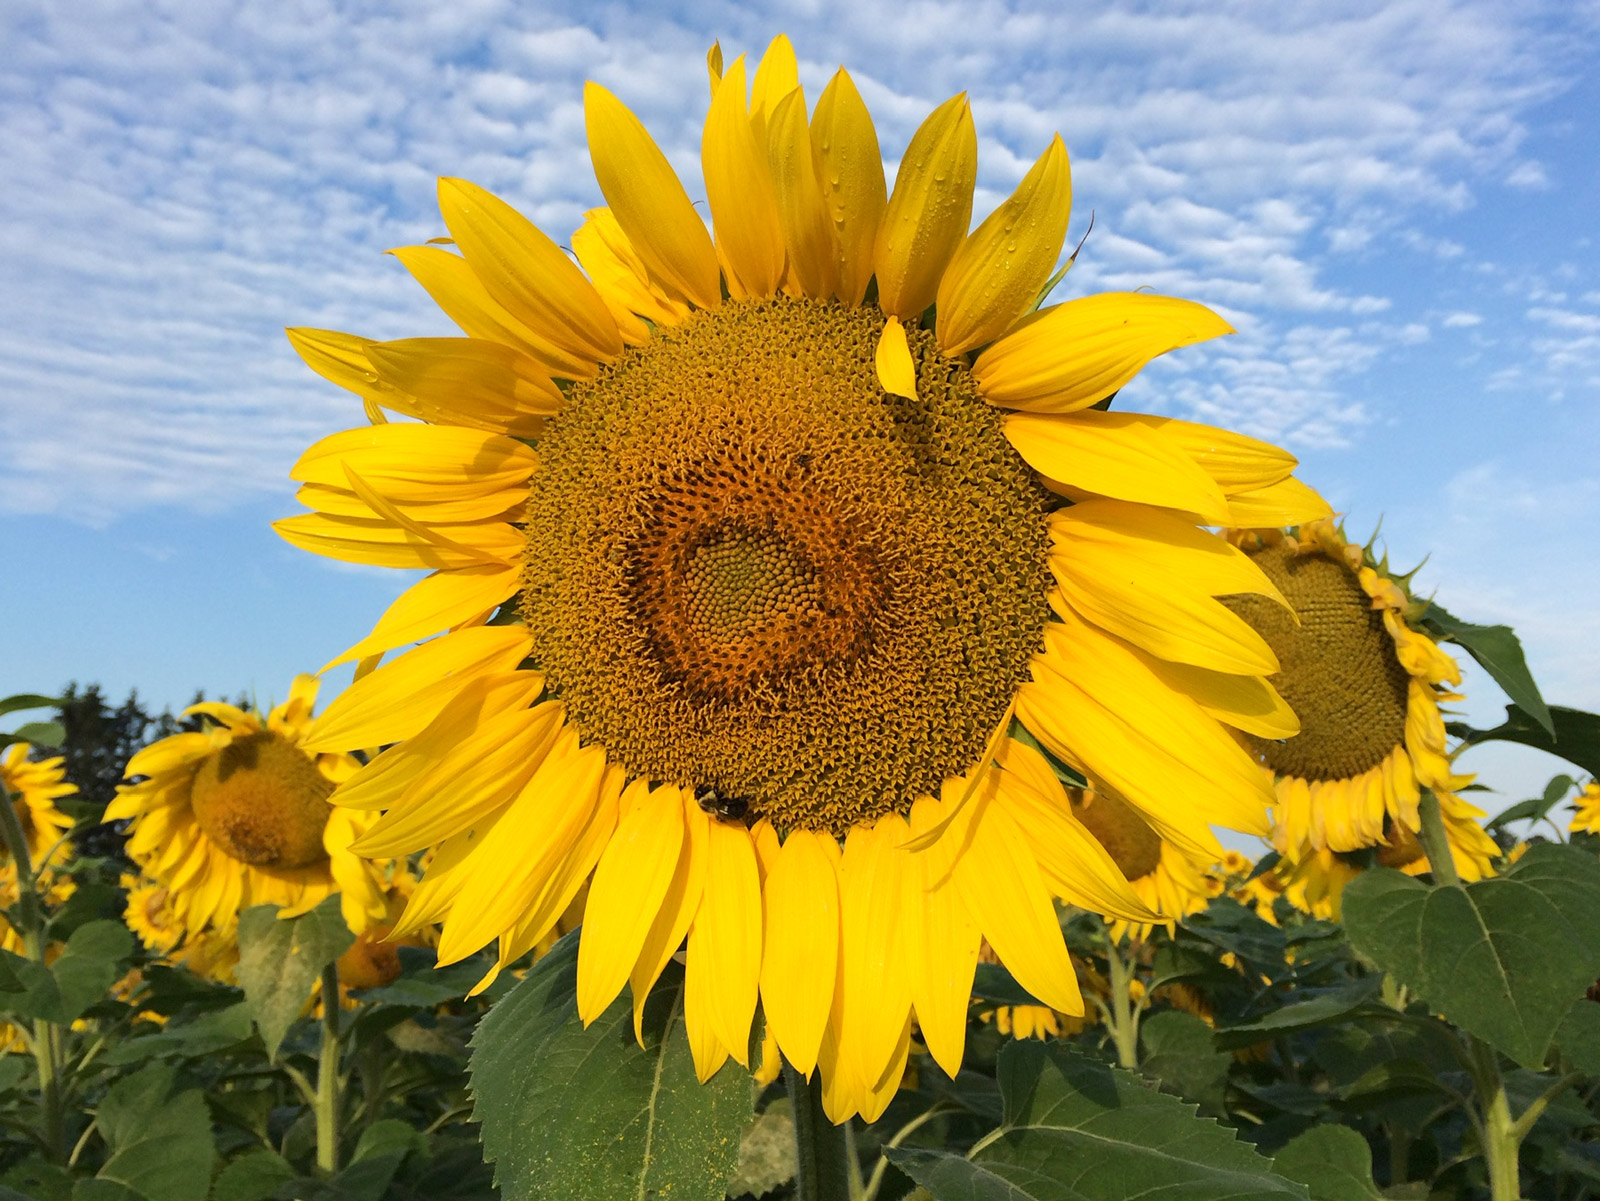 Large sunflower on Harshell Farm